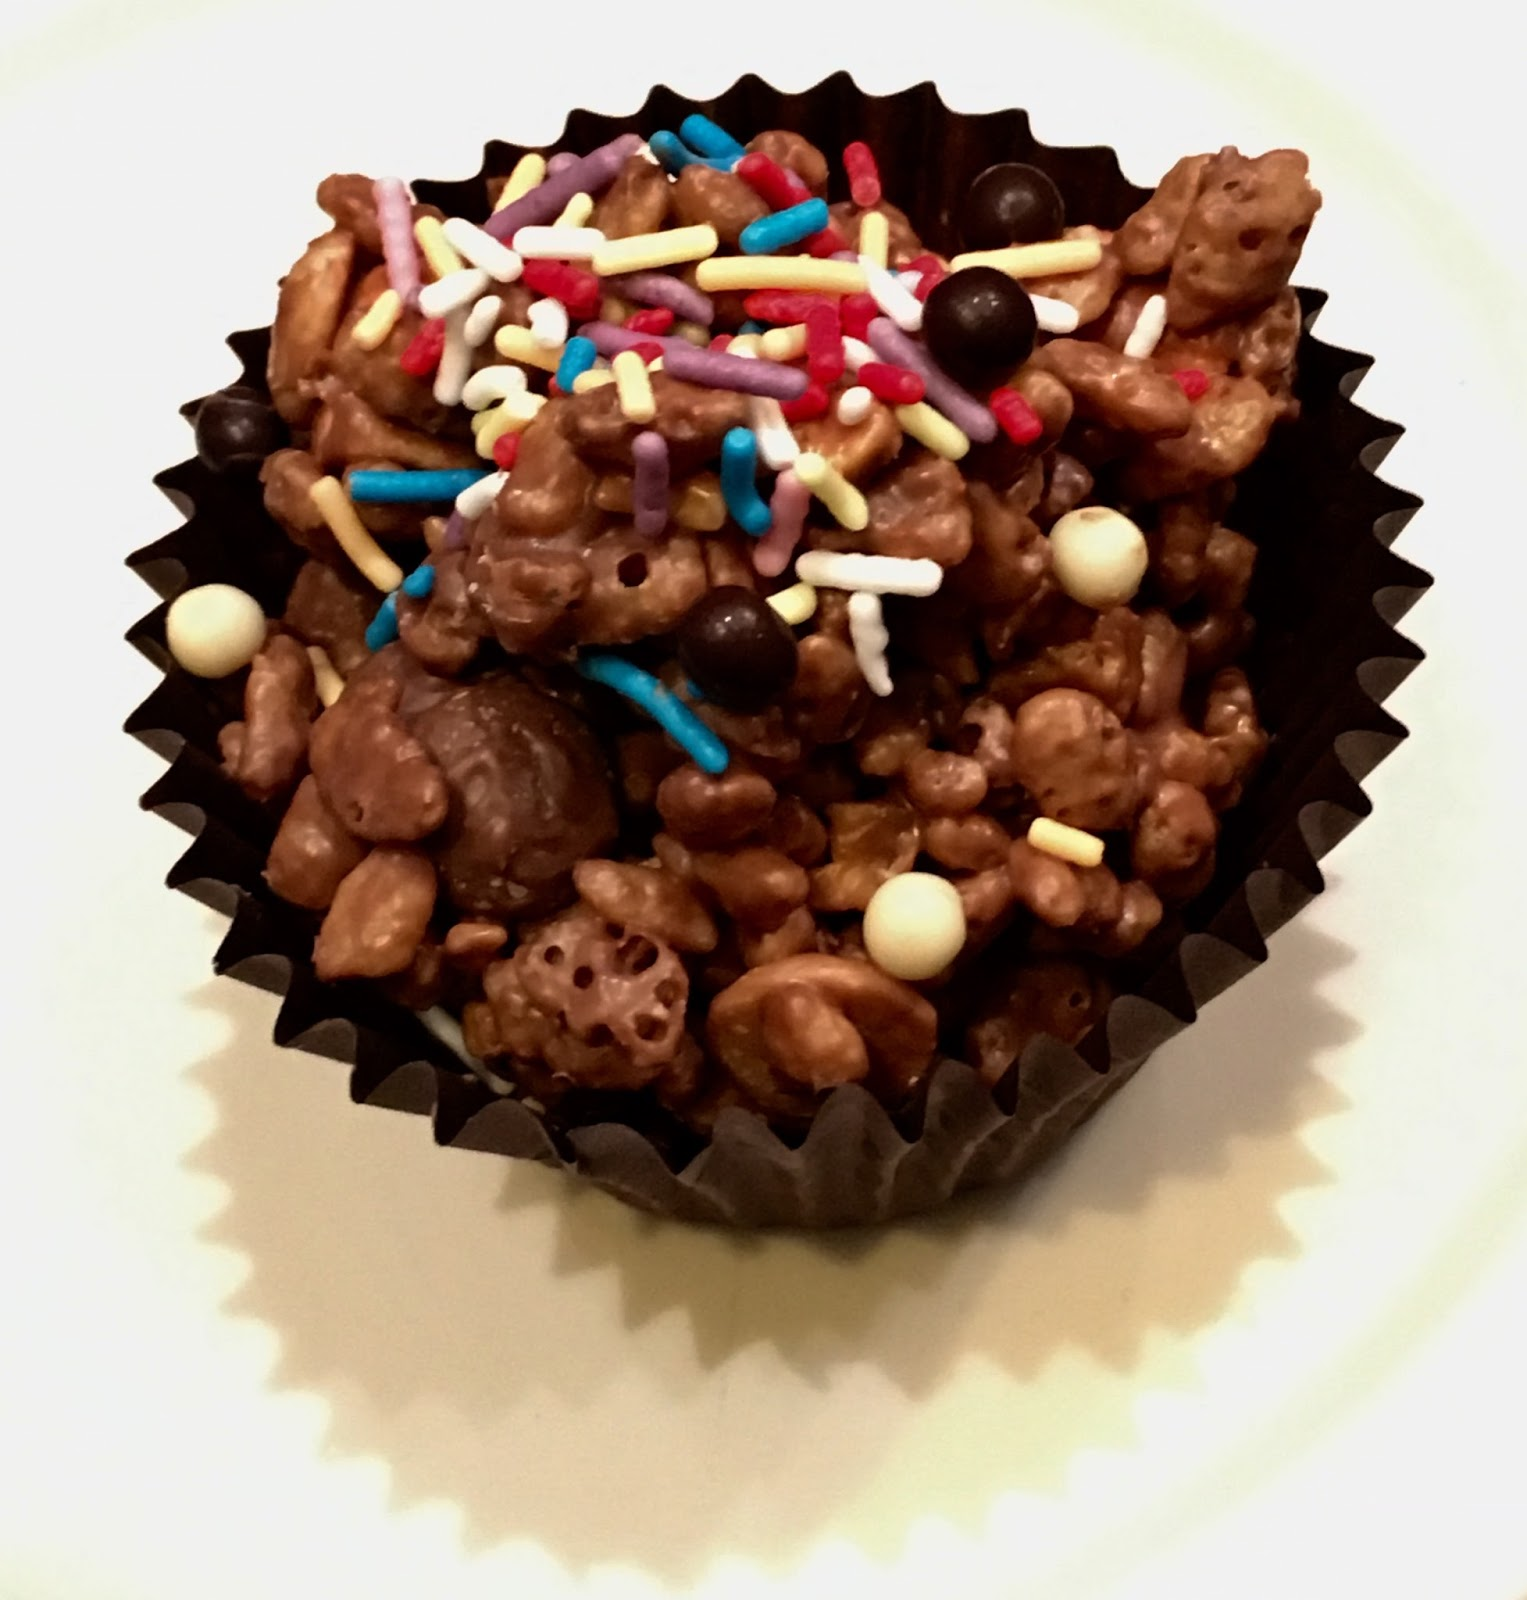 Chocolate rice crispy cake